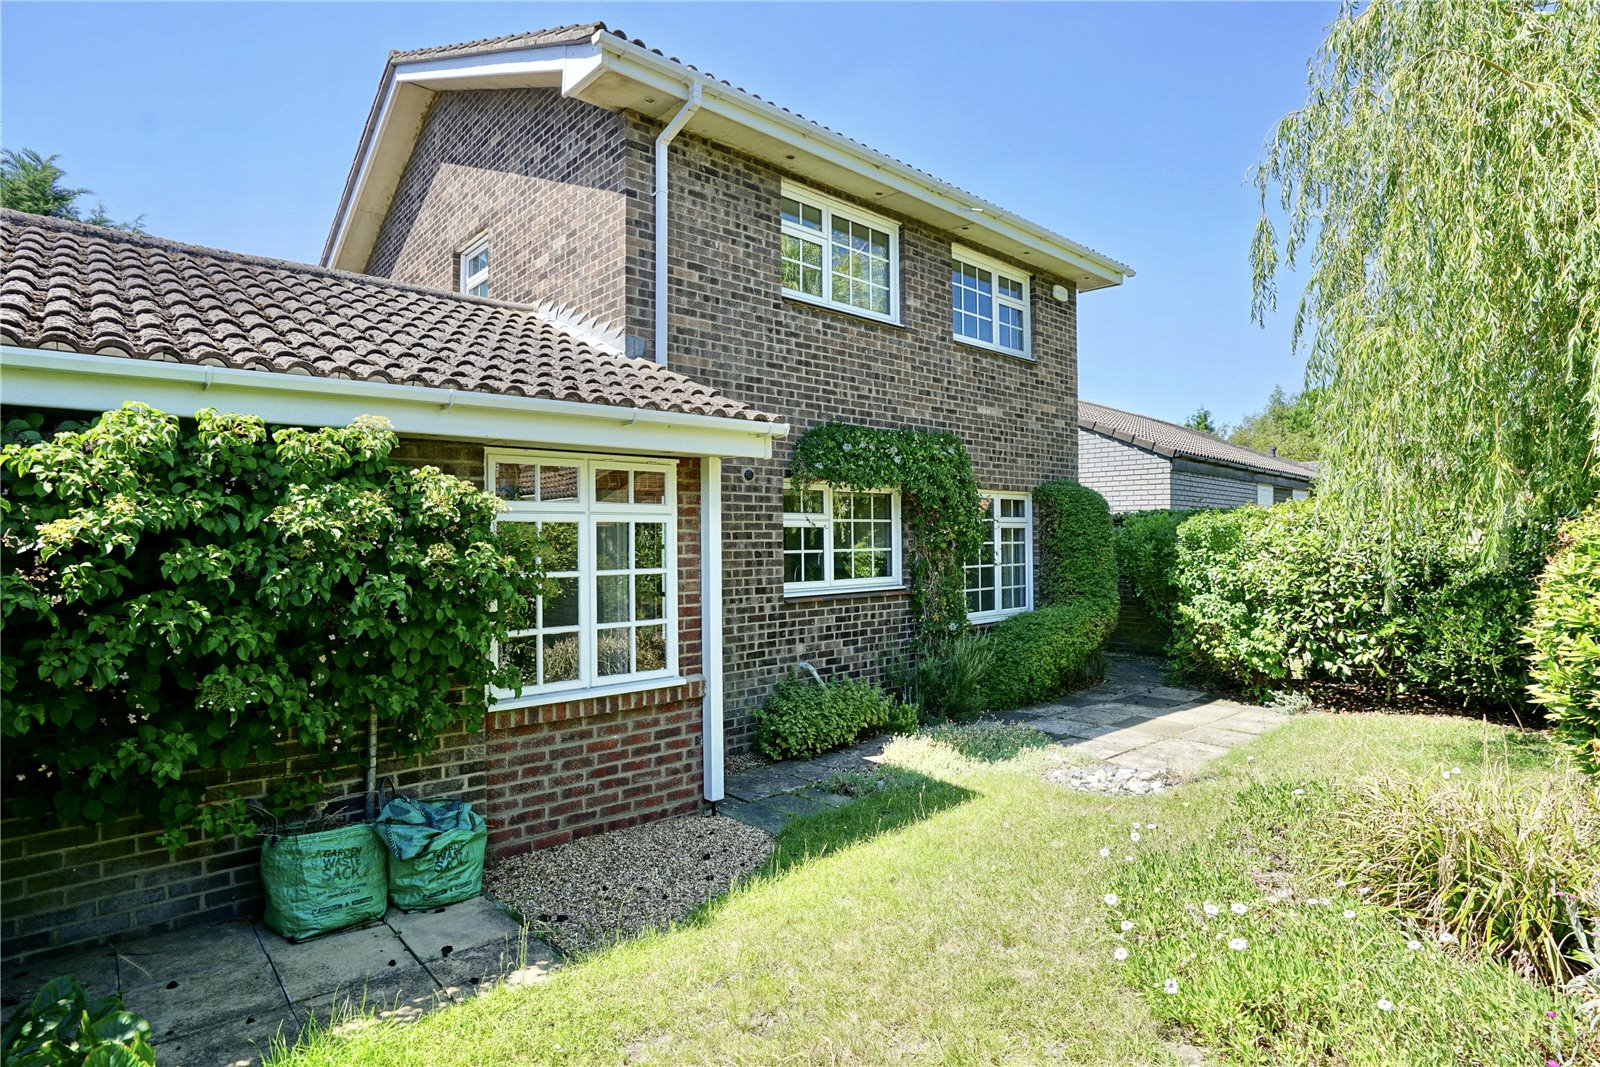 4 bed house for sale in All Hallows, Sandy 4